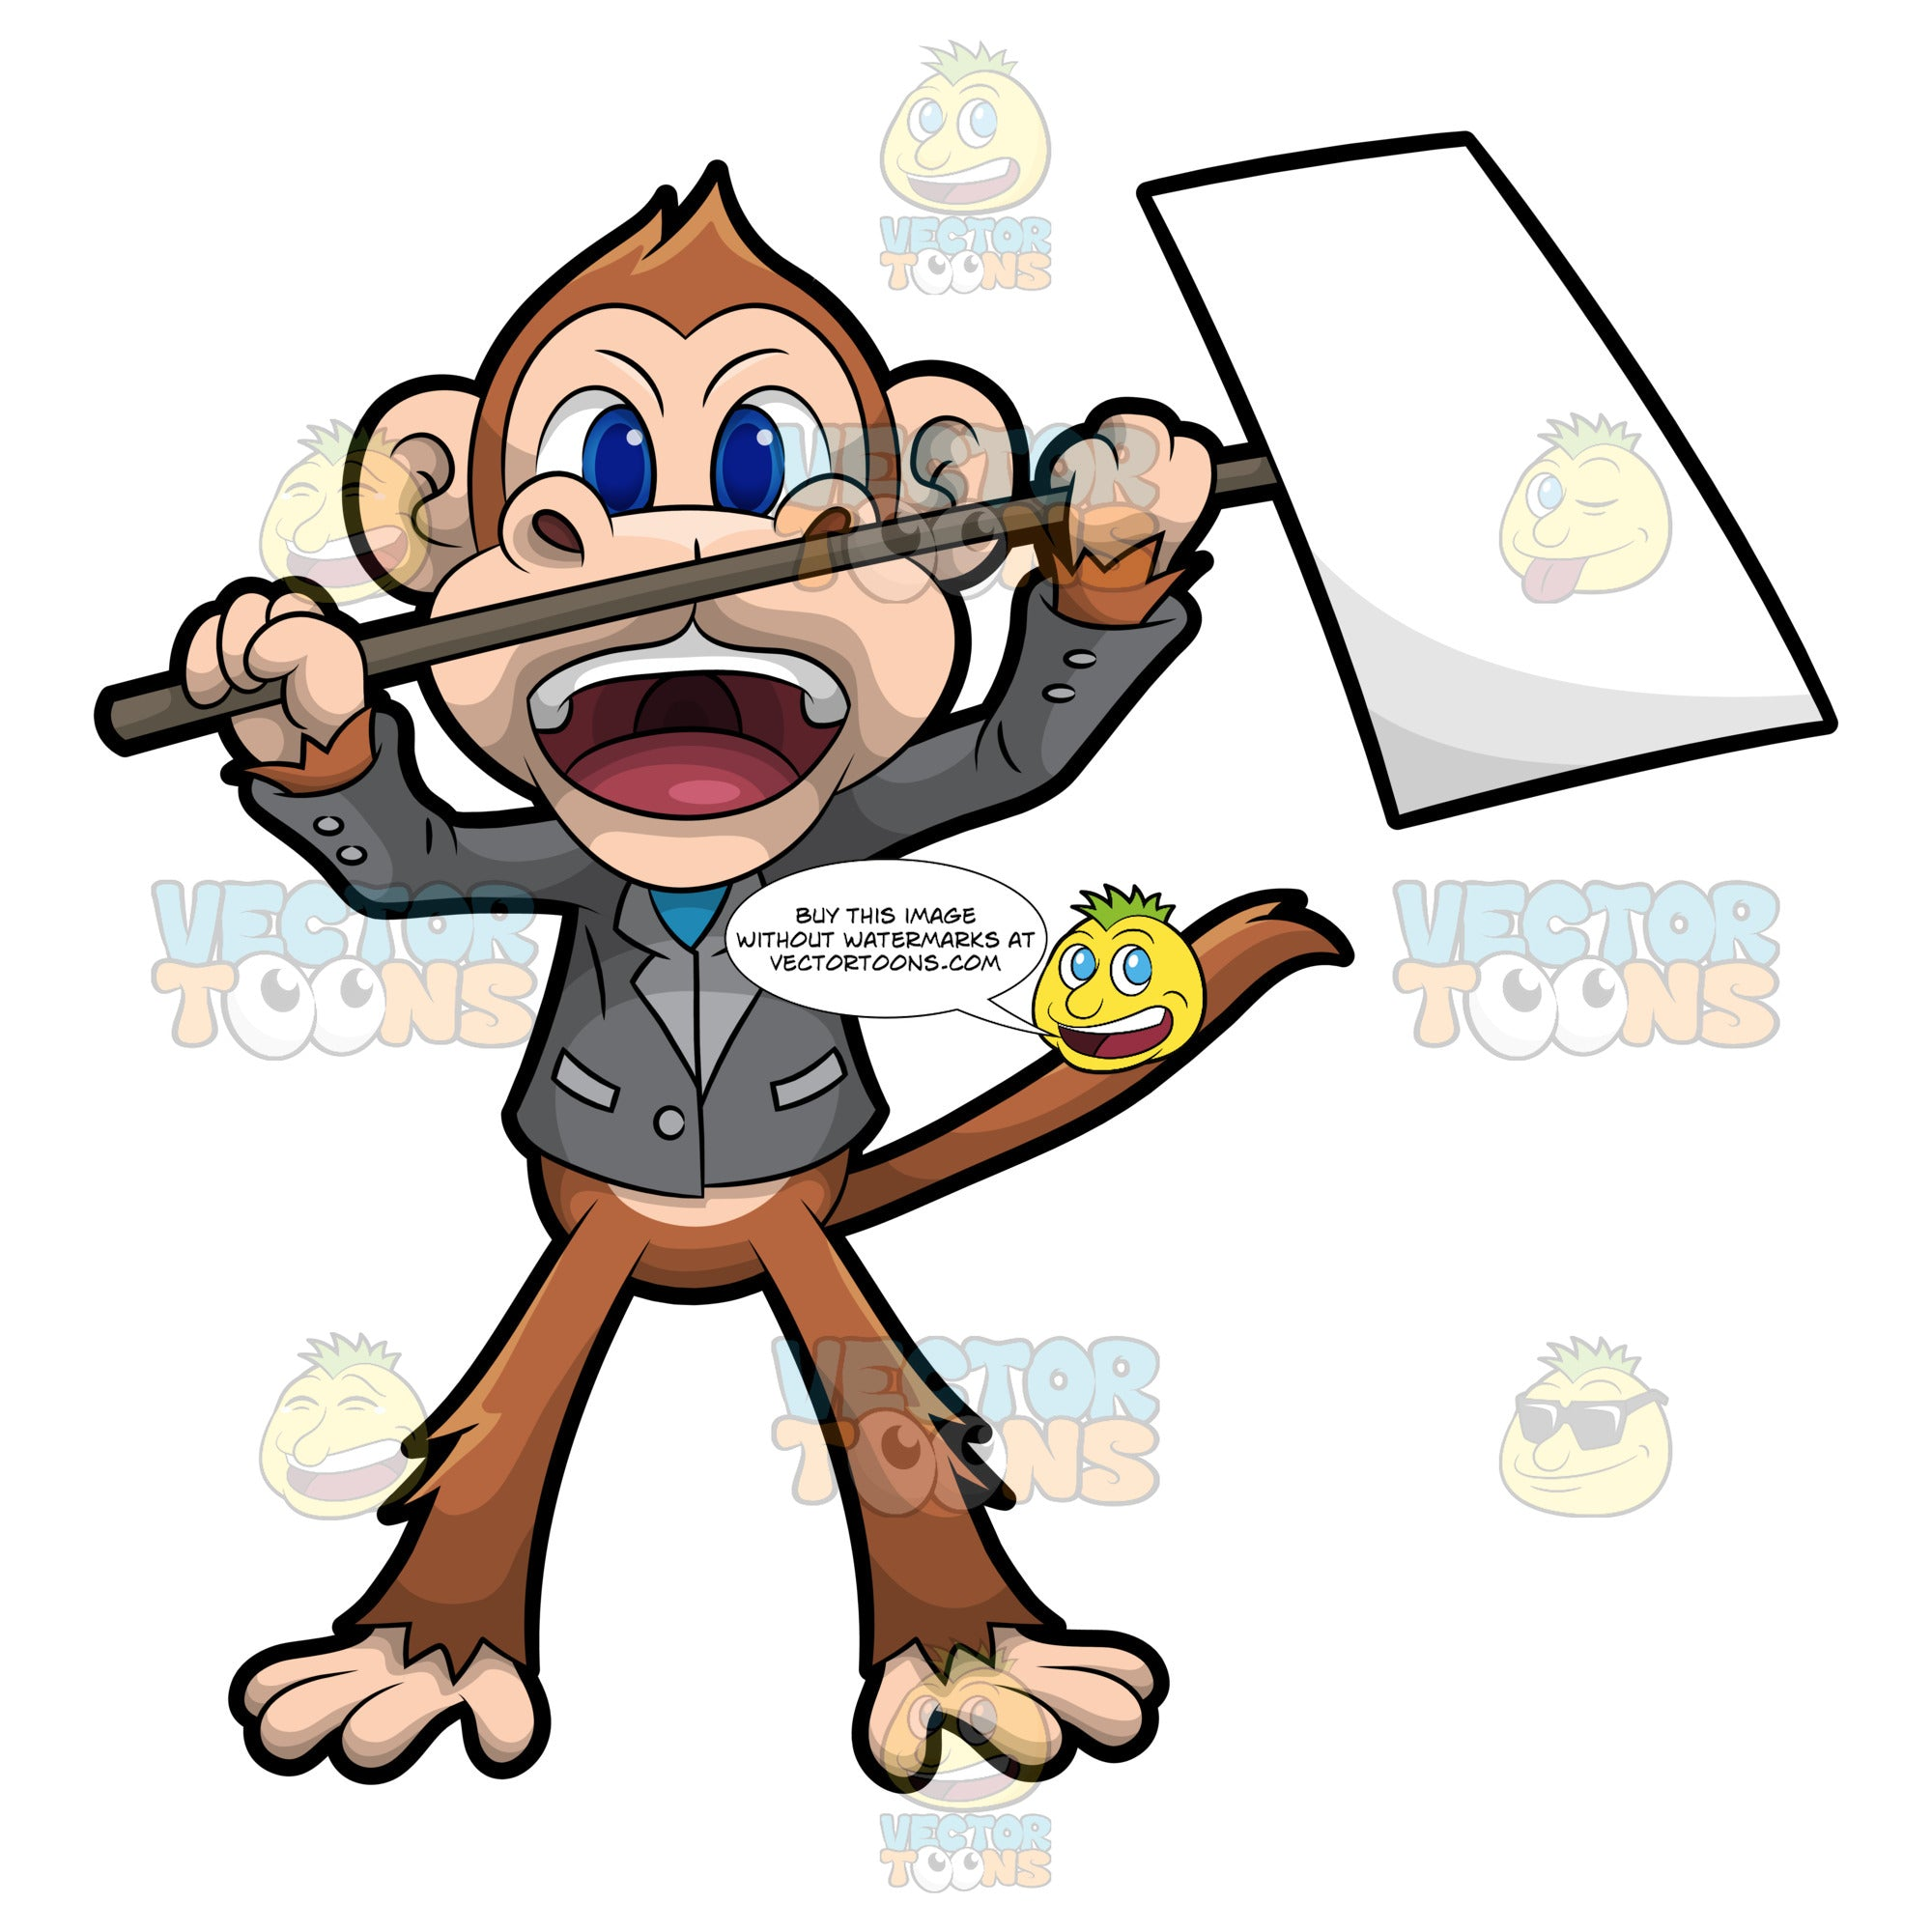 Martin The Monkey Holding A Signboard